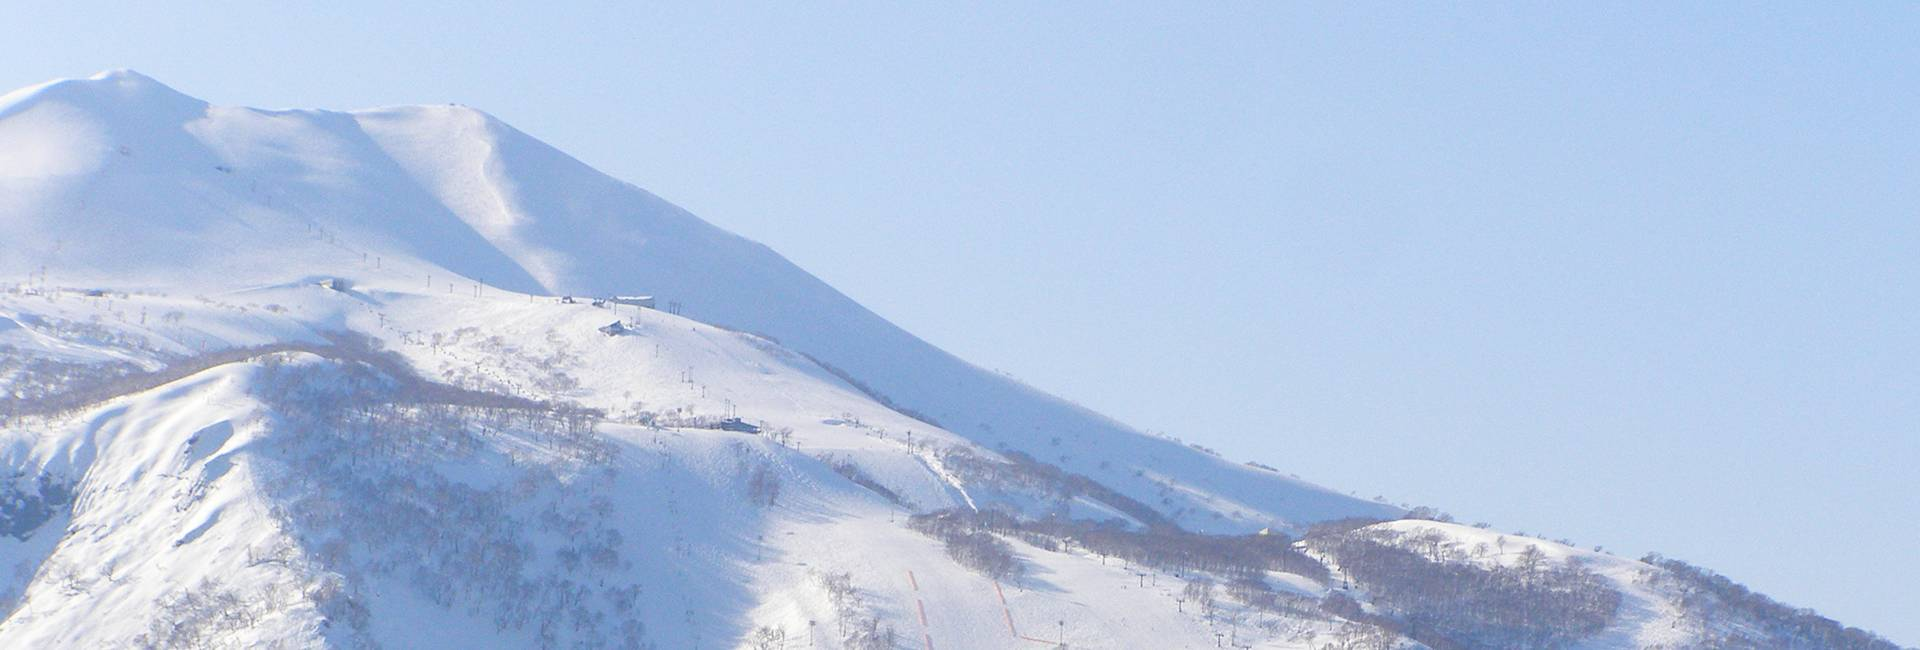 Niseko in Japan